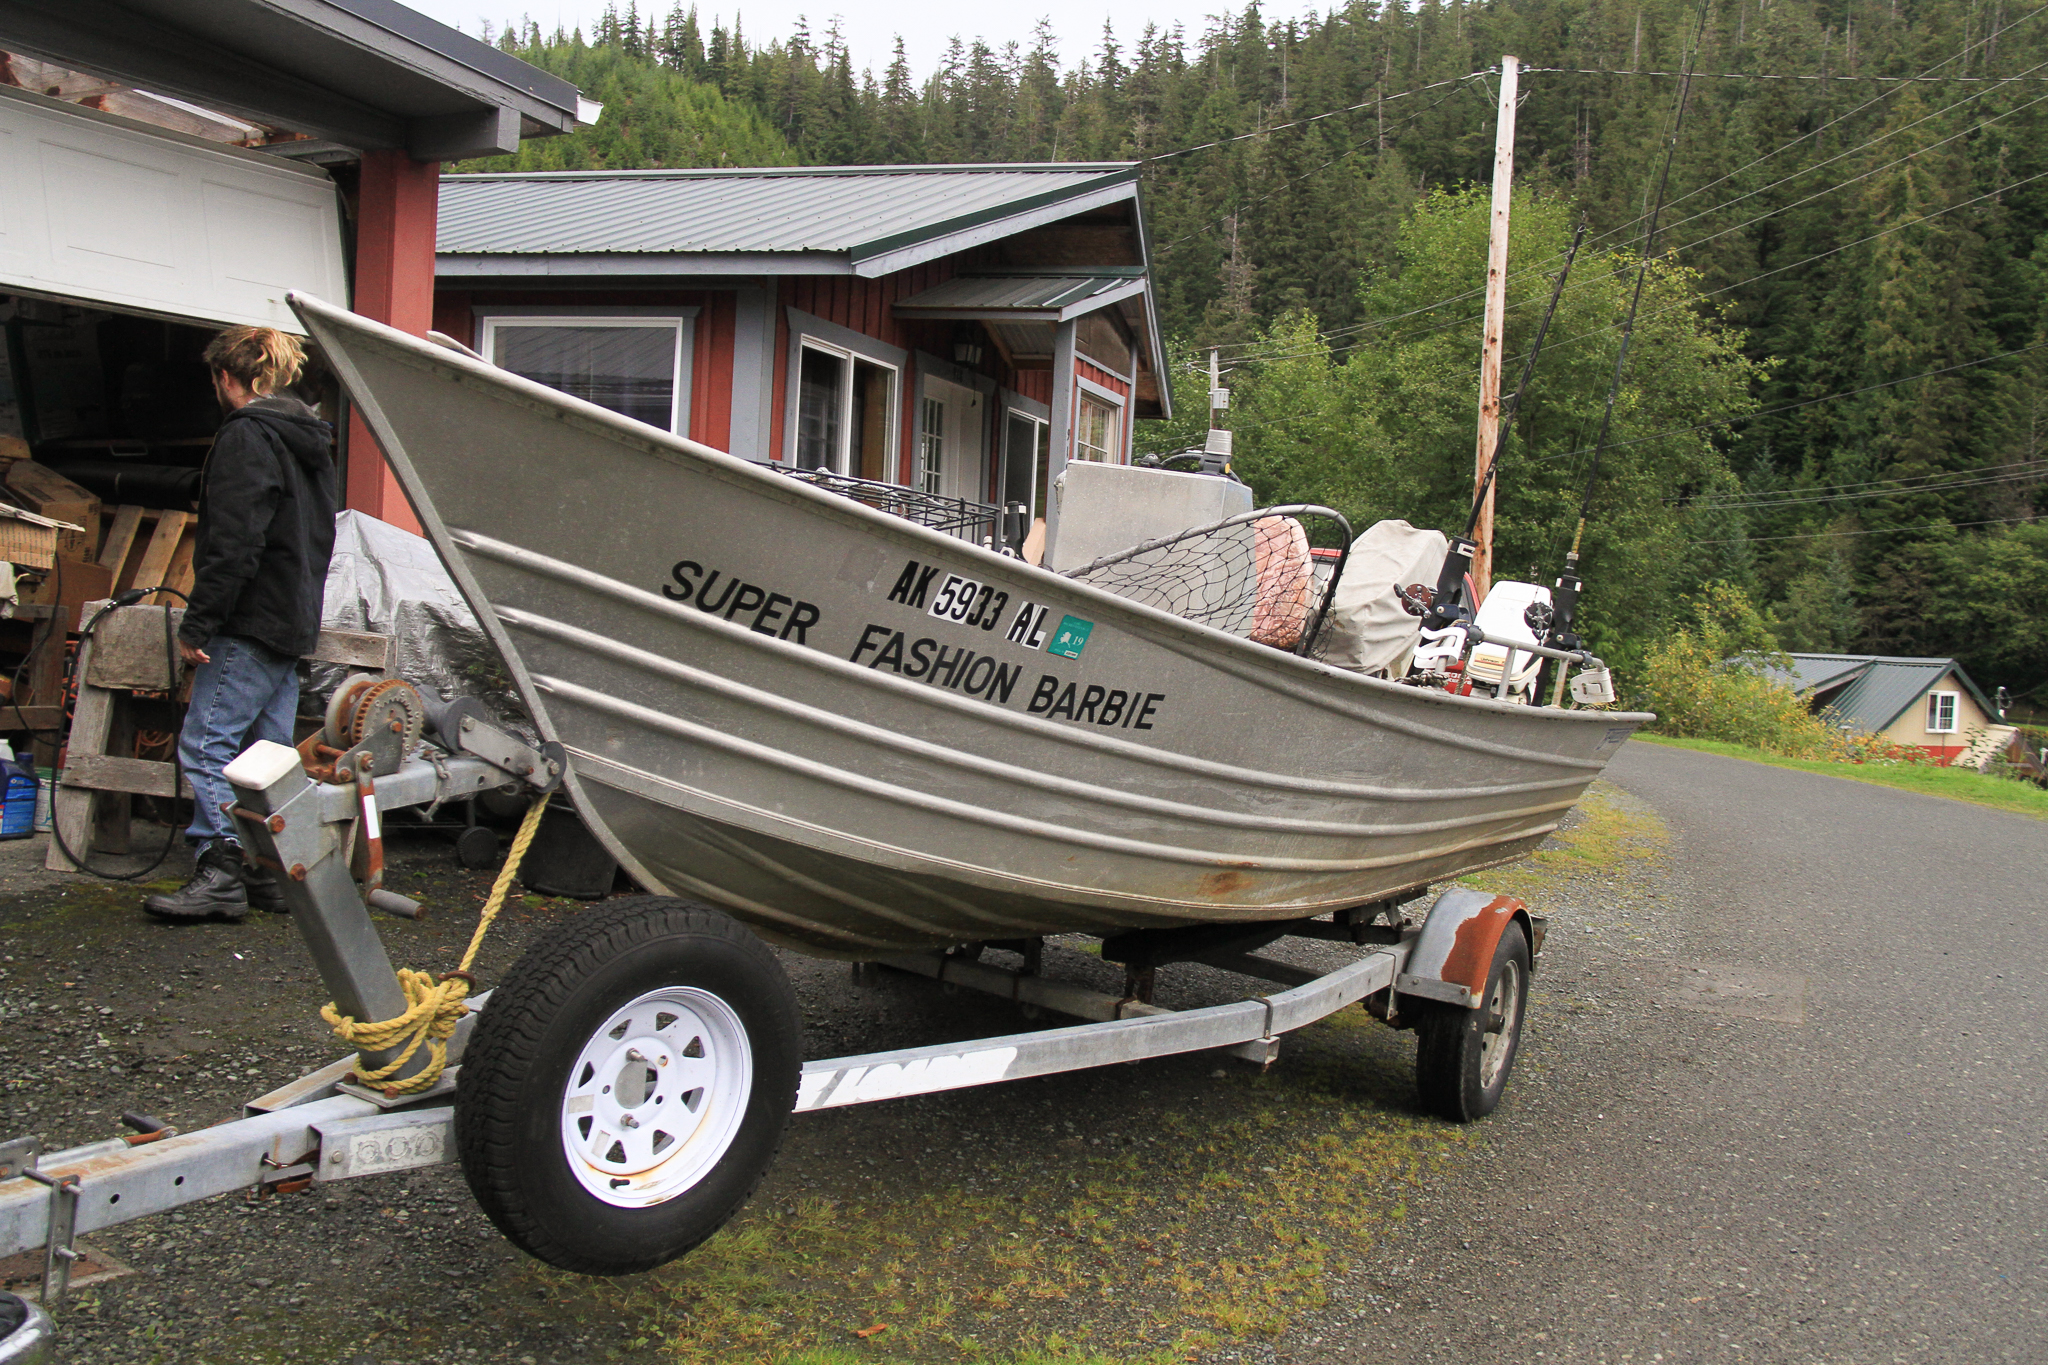 Fishing for salmon is culture, recreation, income, and staple food source in Southeast Alaska's island and coastal communities. This boat belongs to a former Forest Service silviculturalist in Thorne Bay, Alaska.